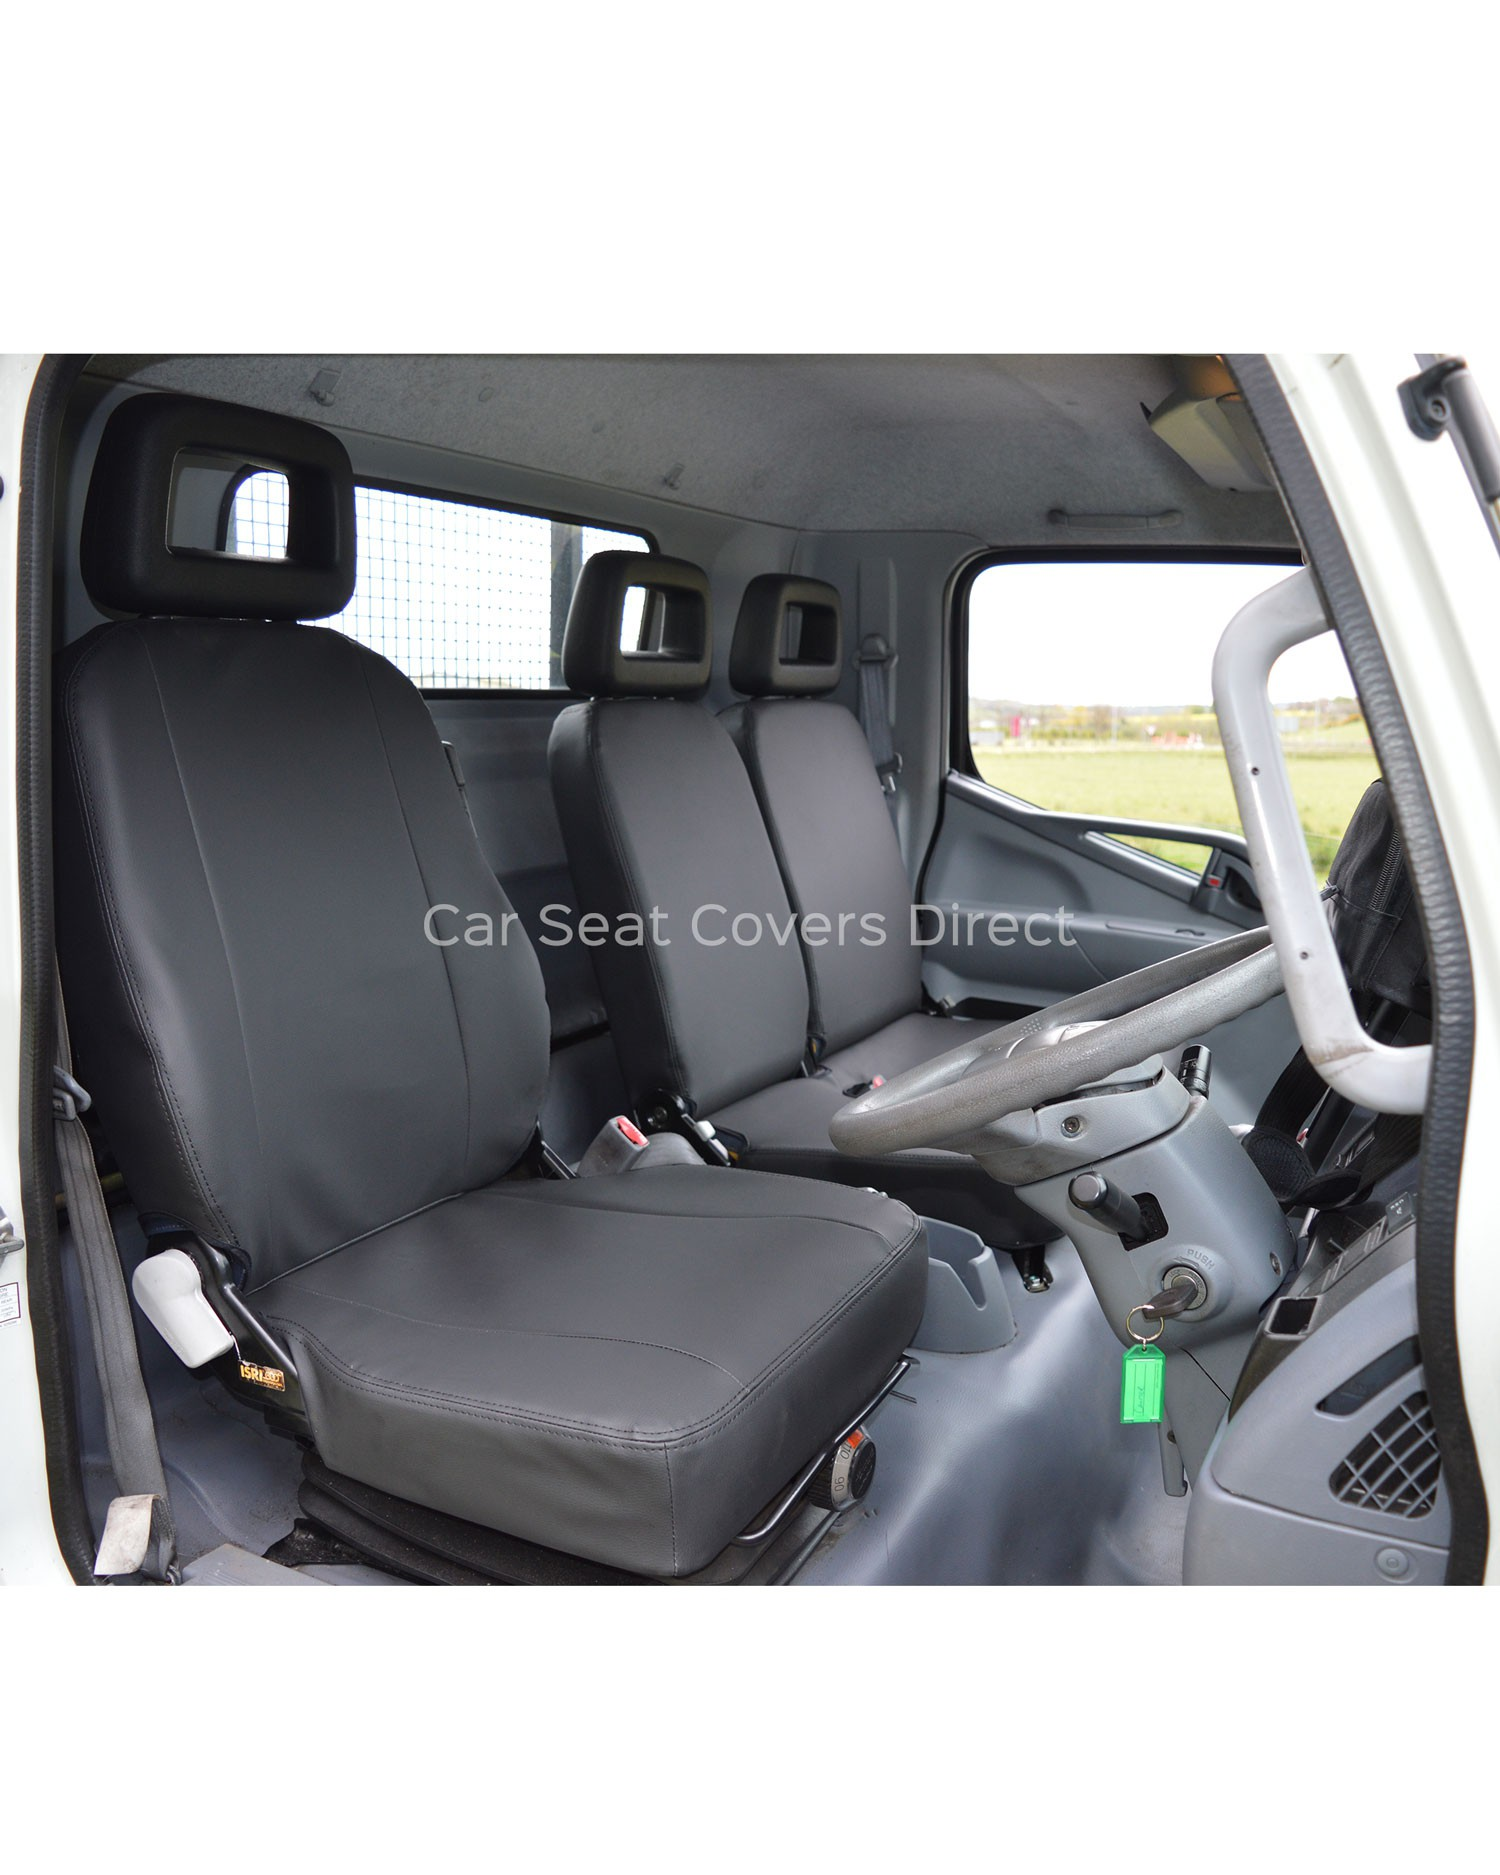 Mitsubishi Canter Tailored Seat Covers for 2010-2016 Model